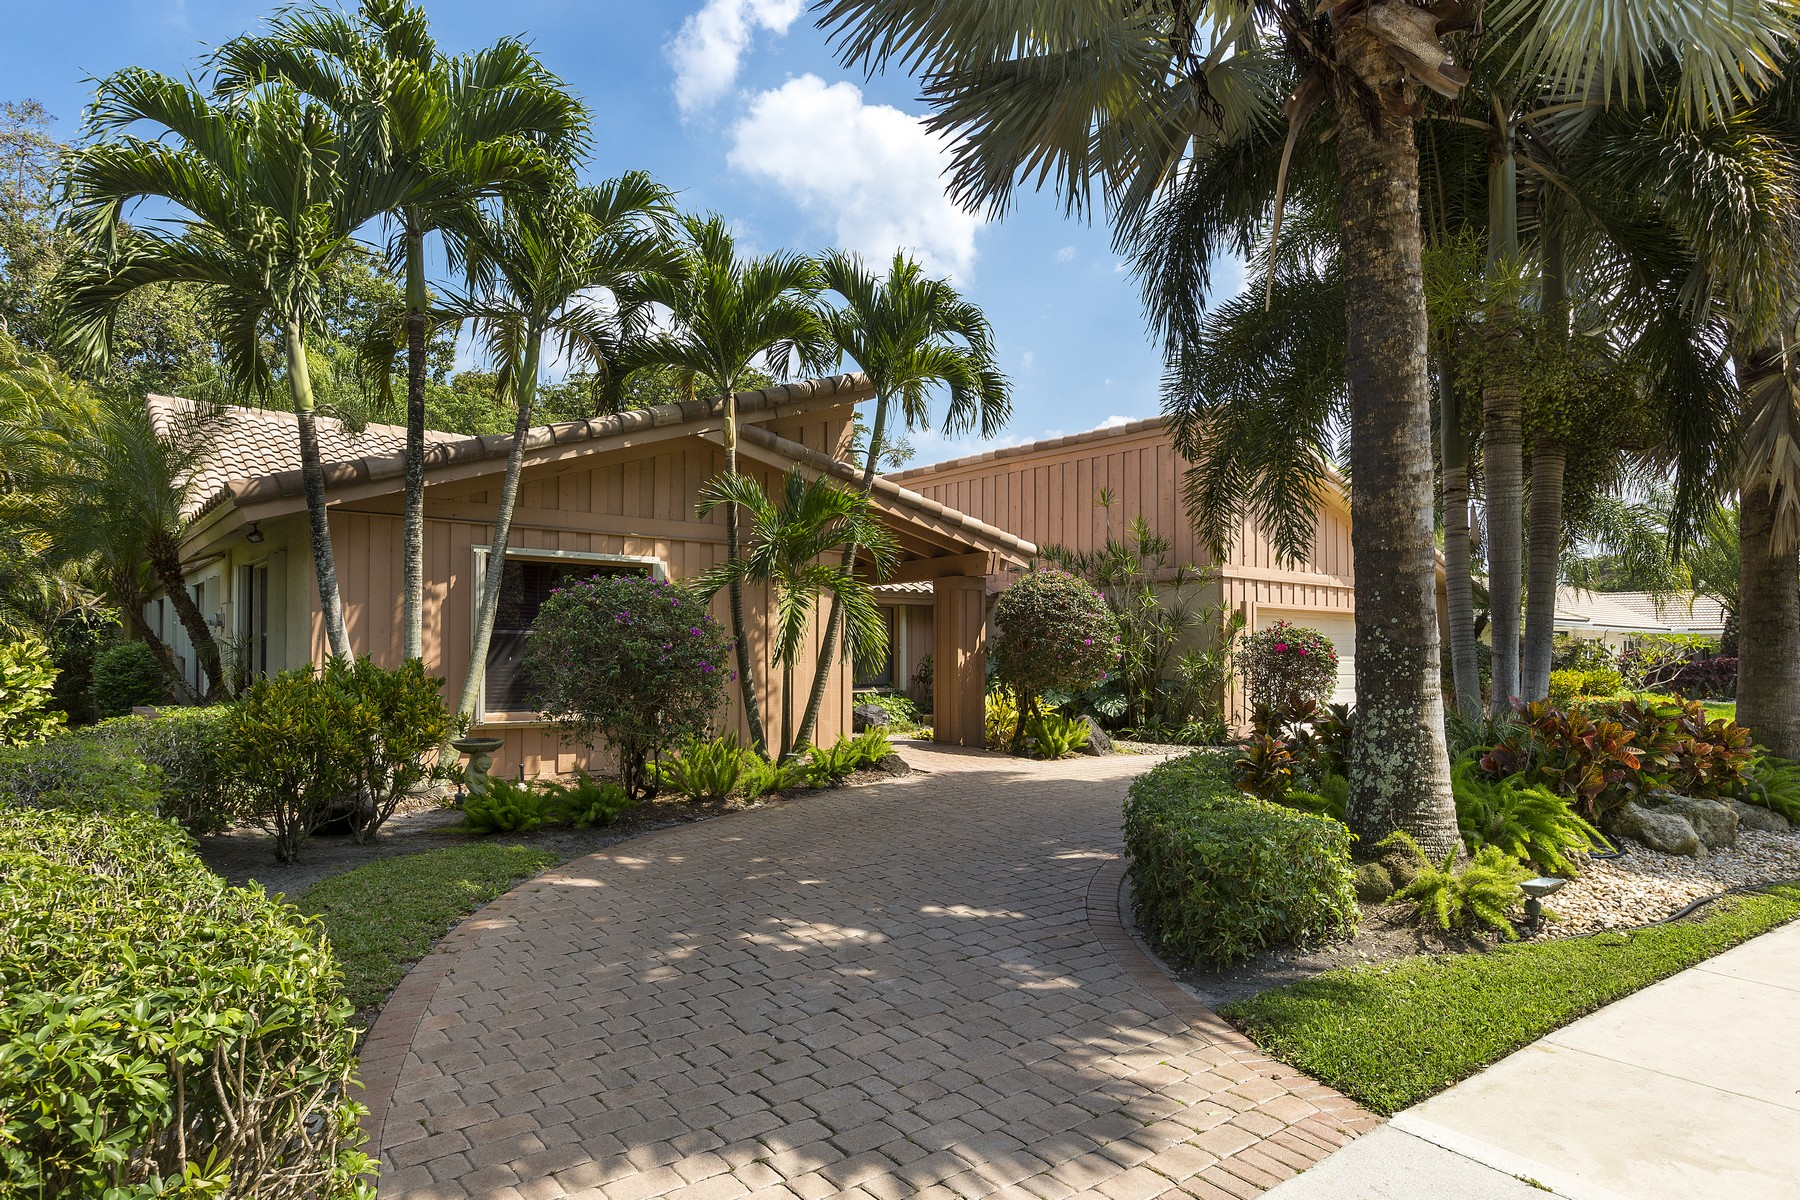 Property For Sale at 2928 Banyan Blvd Cir NW, Boca Raton, FL 33431